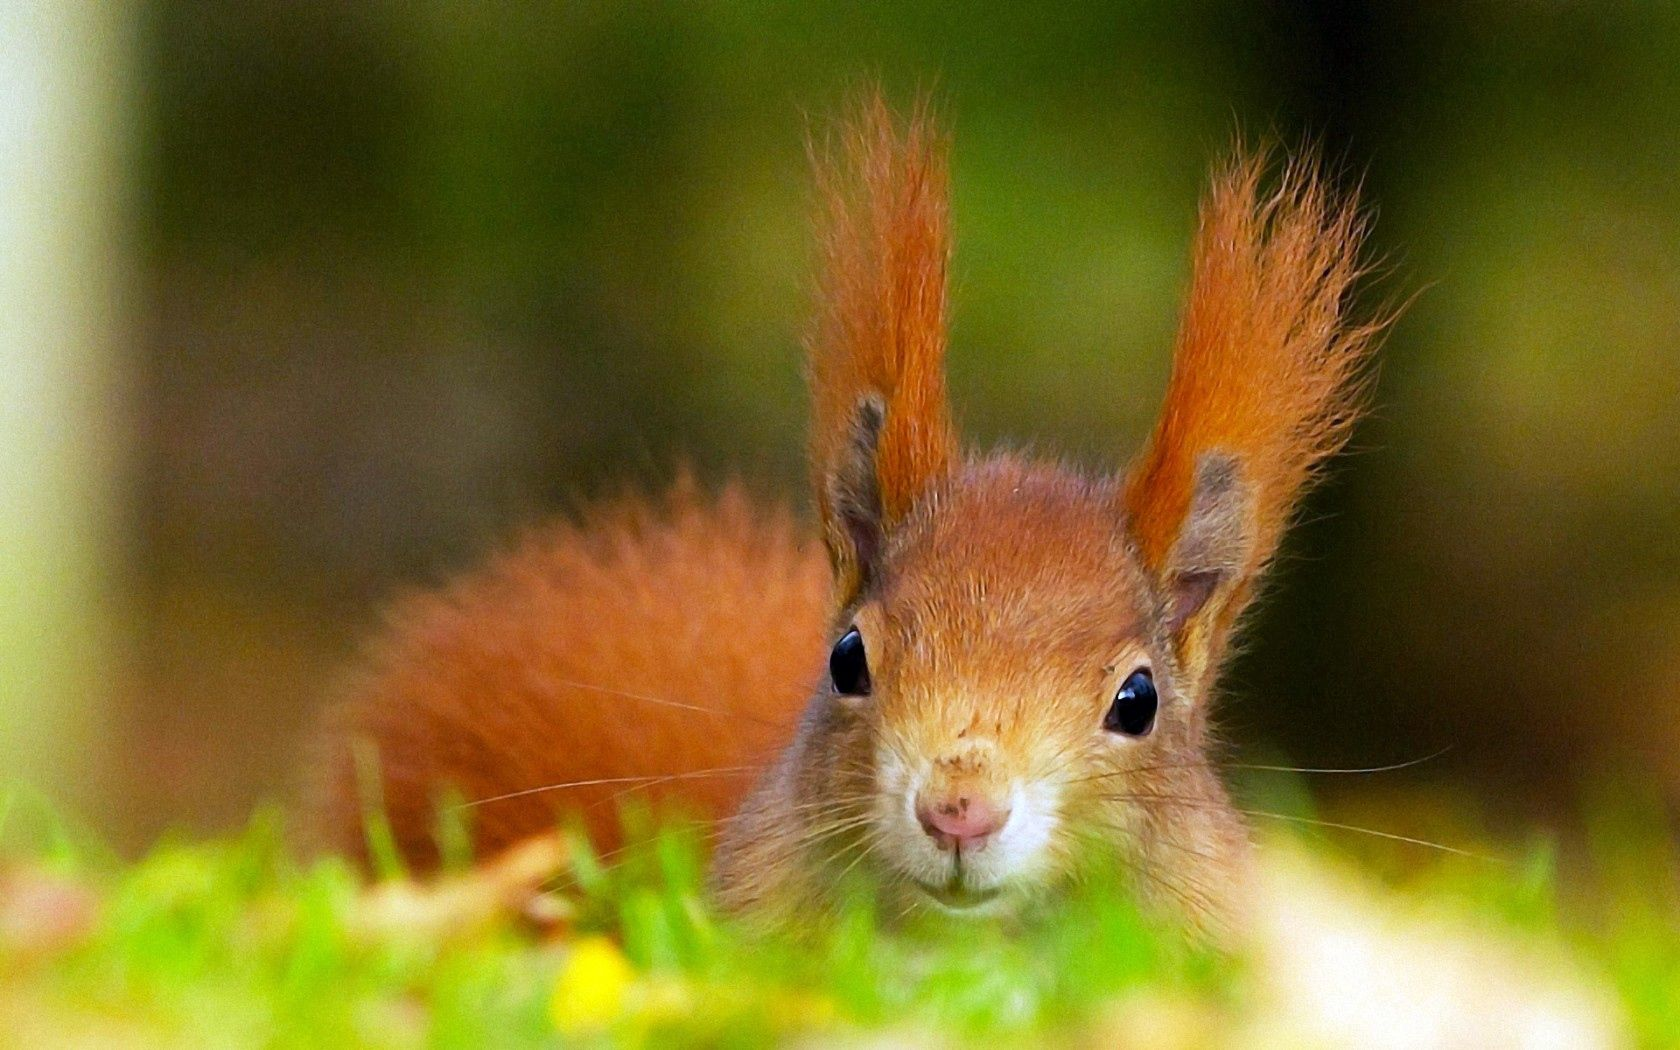 91144 download wallpaper Animals, Fluffy, Redhead, Squirrel, Ears, Head screensavers and pictures for free